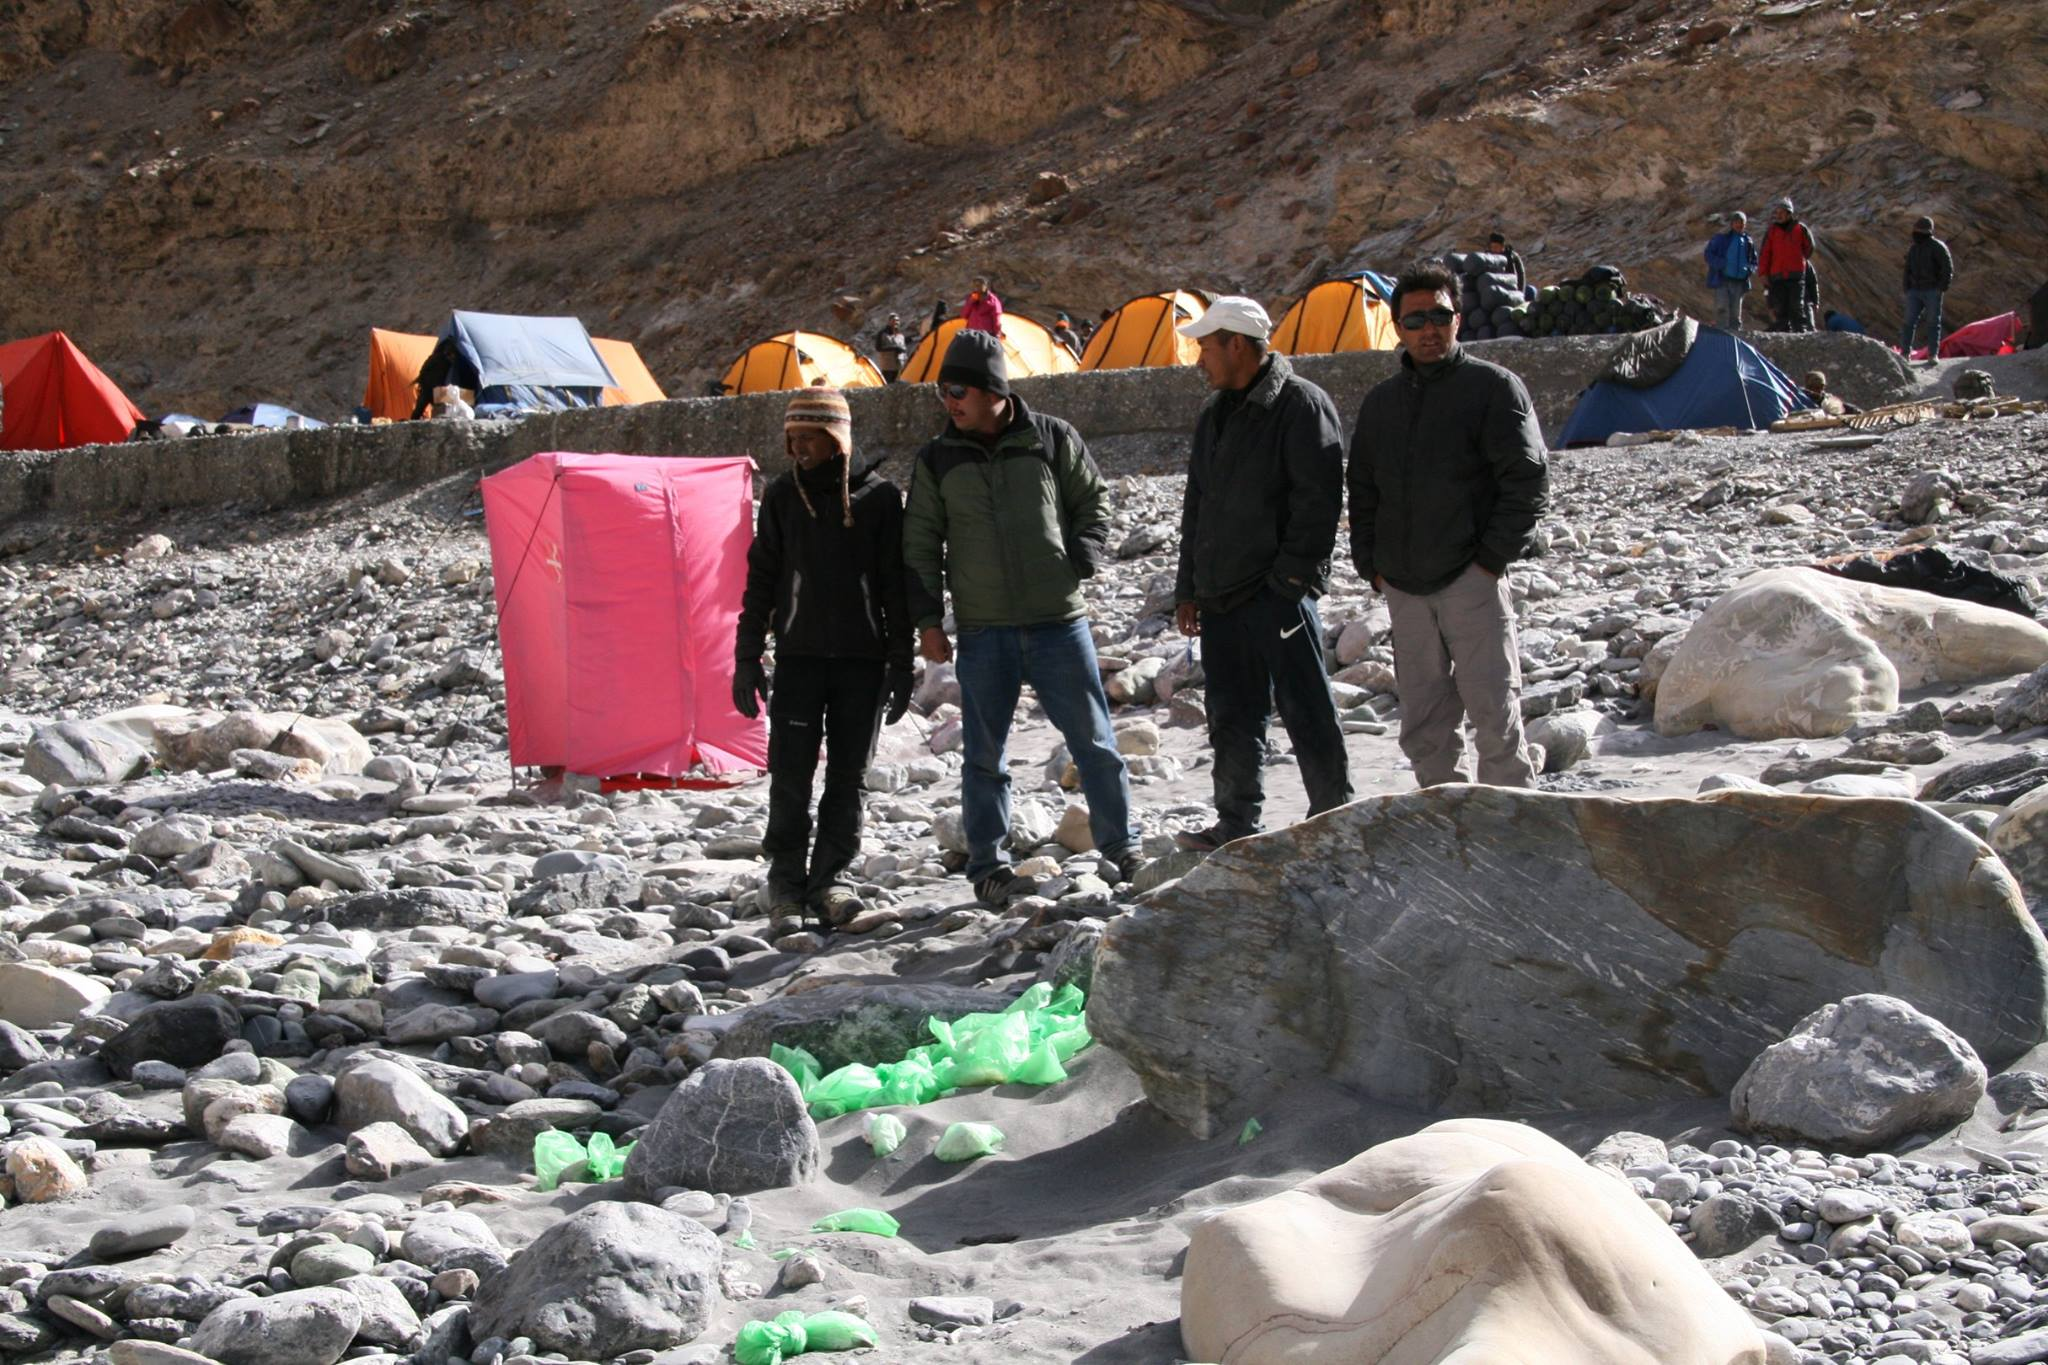 Shitt Bags dumped in oopen by India HIkes in Ladakh